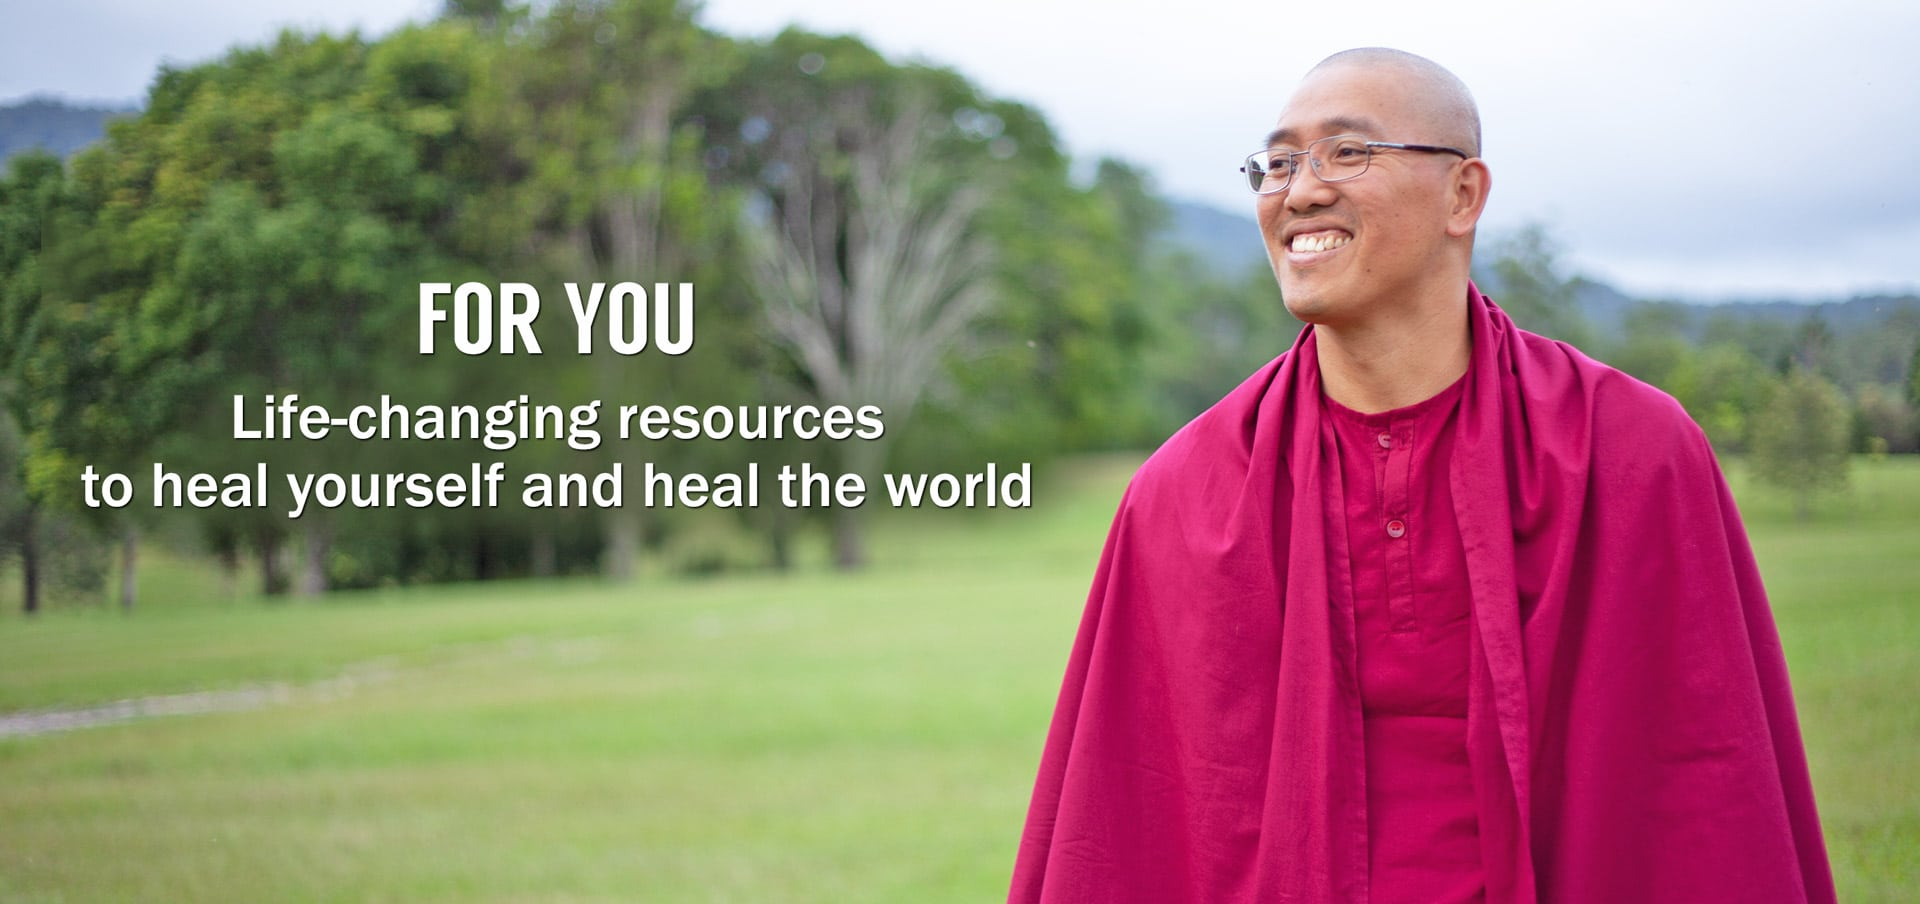 Article: For you - life changing resources to heal yourself and heal the world